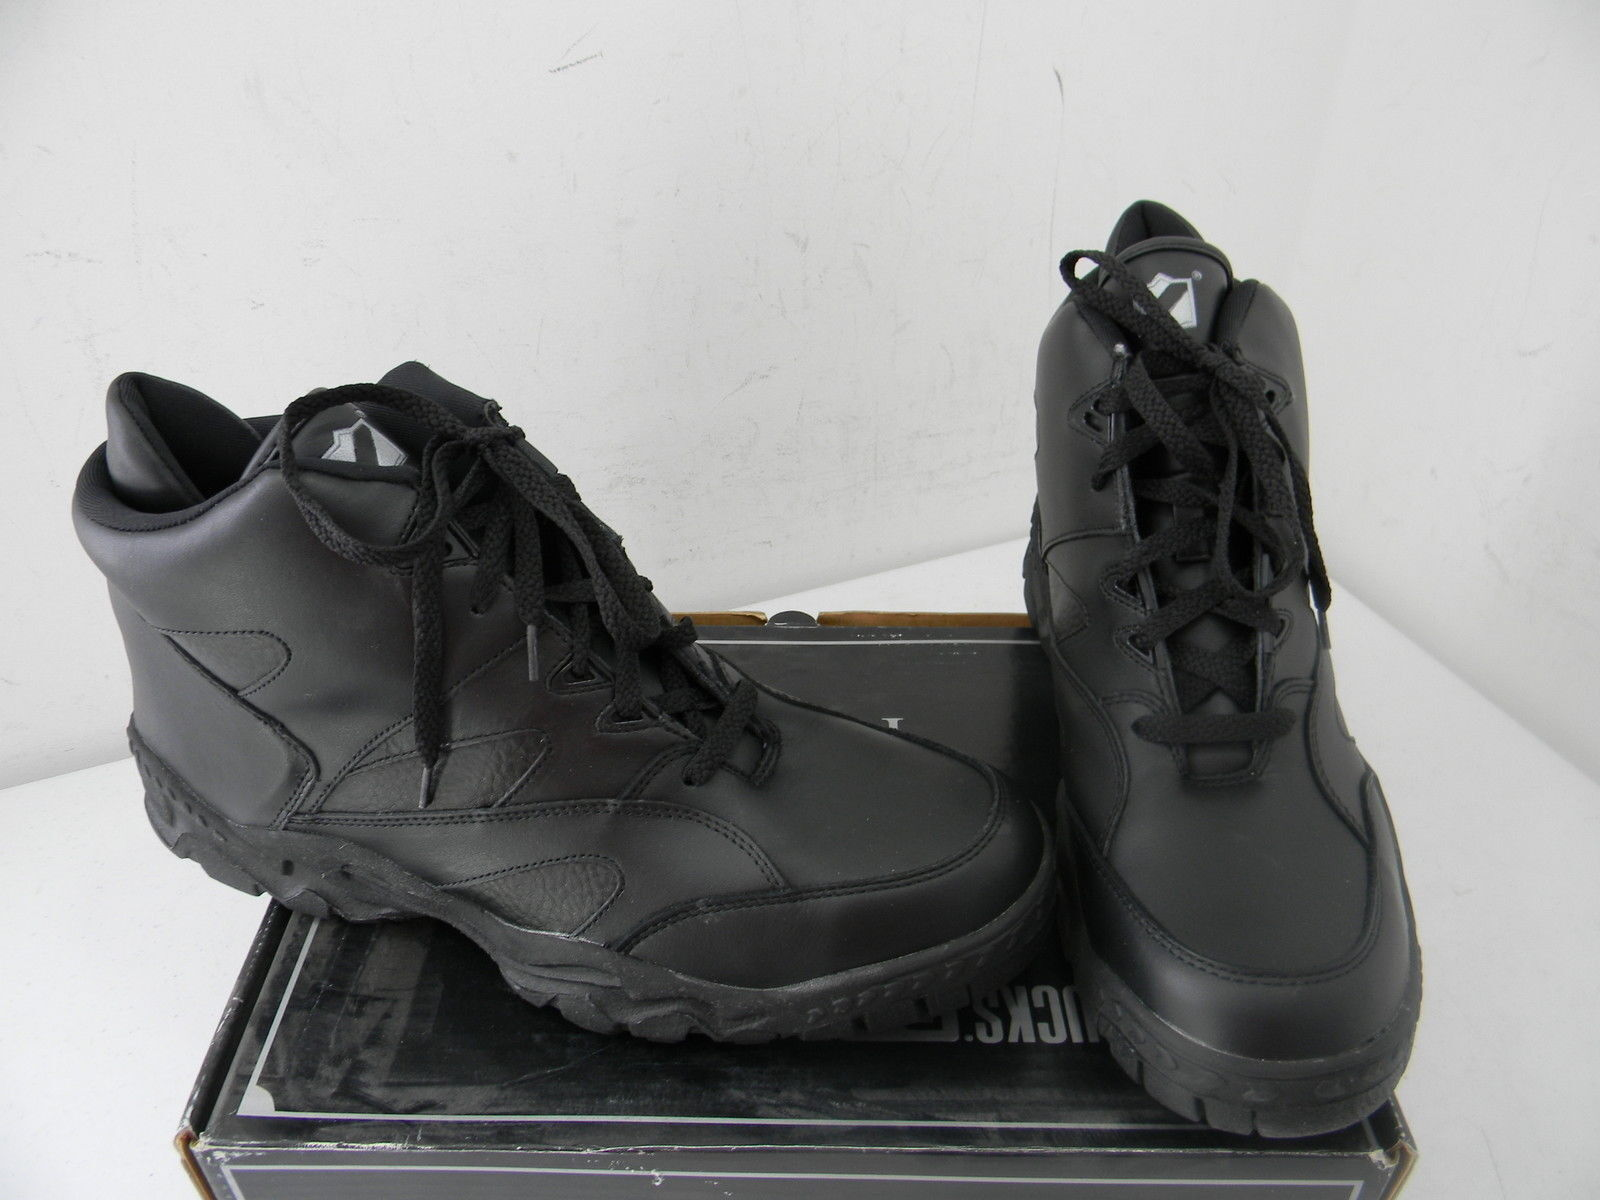 New Men's Rucks PC W4965 Black Tall Athletic - Size 9 1/2 Medium